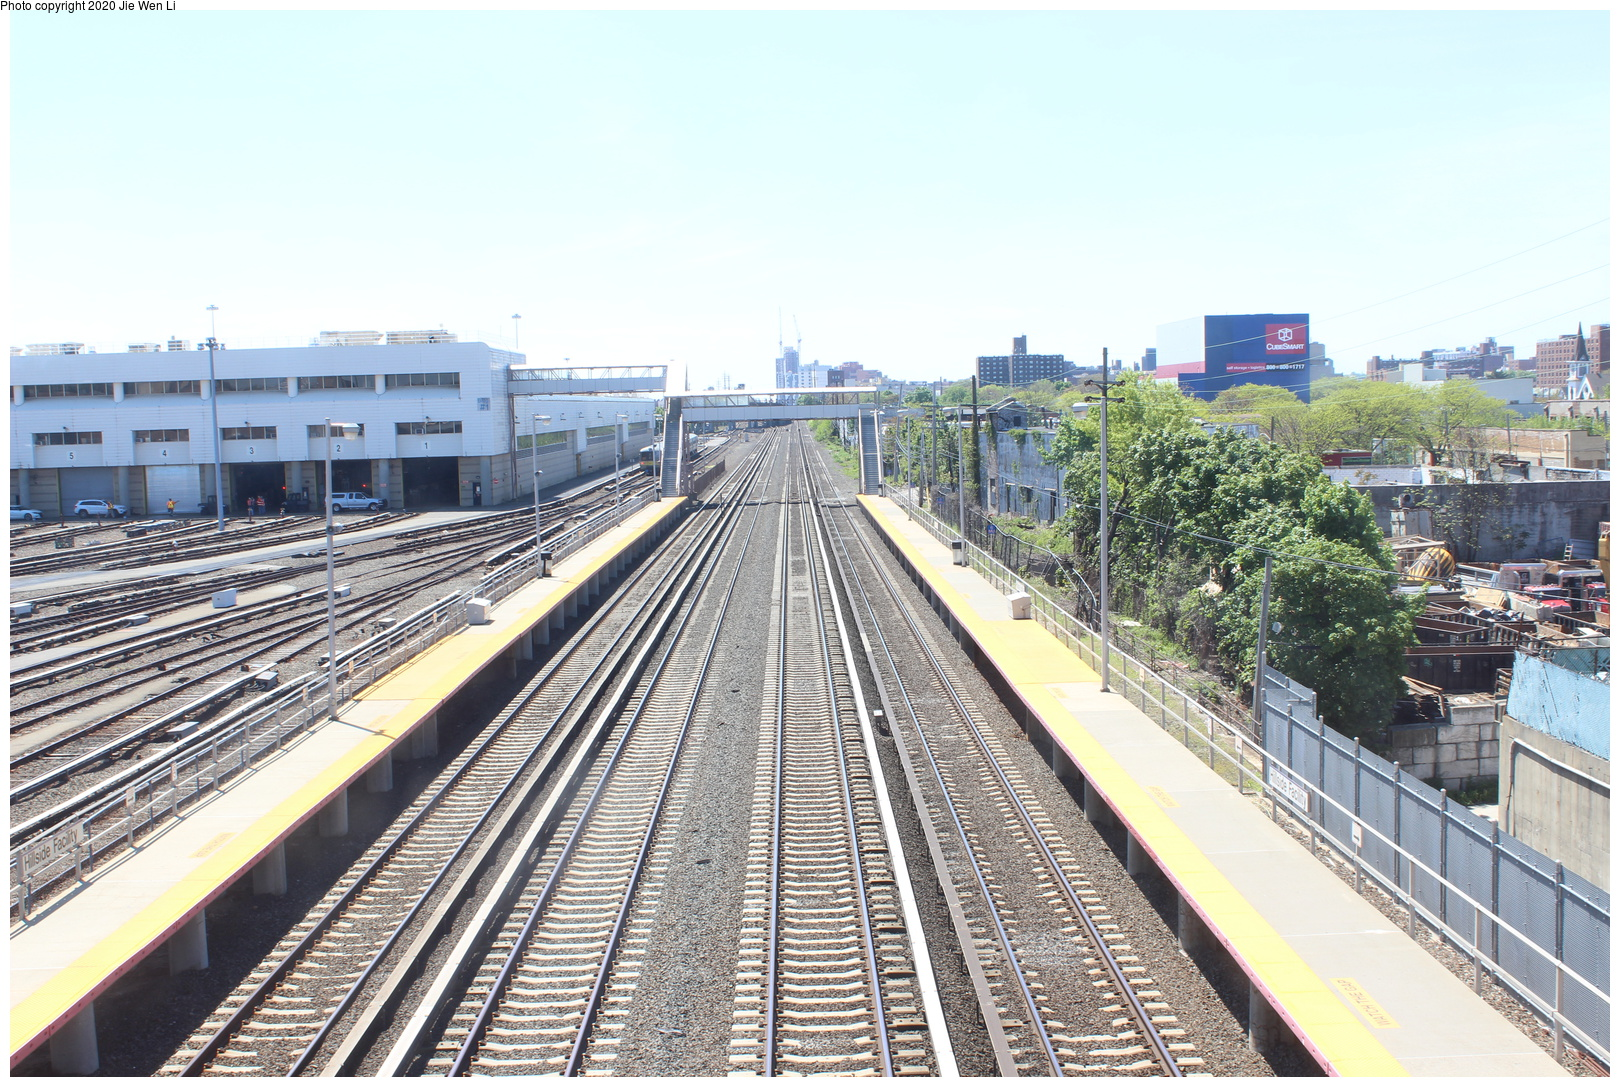 (213k, 1026x1044)<br><b>Country:</b> United States<br><b>City:</b> New York<br><b>System:</b> New York City Transit<br><b>Location:</b> East 180th Street Yard<br><b>Car:</b> Low-V 4932/5324 <br><b>Photo by:</b> Joel Shanus<br><b>Viewed (this week/total):</b> 1 / 740